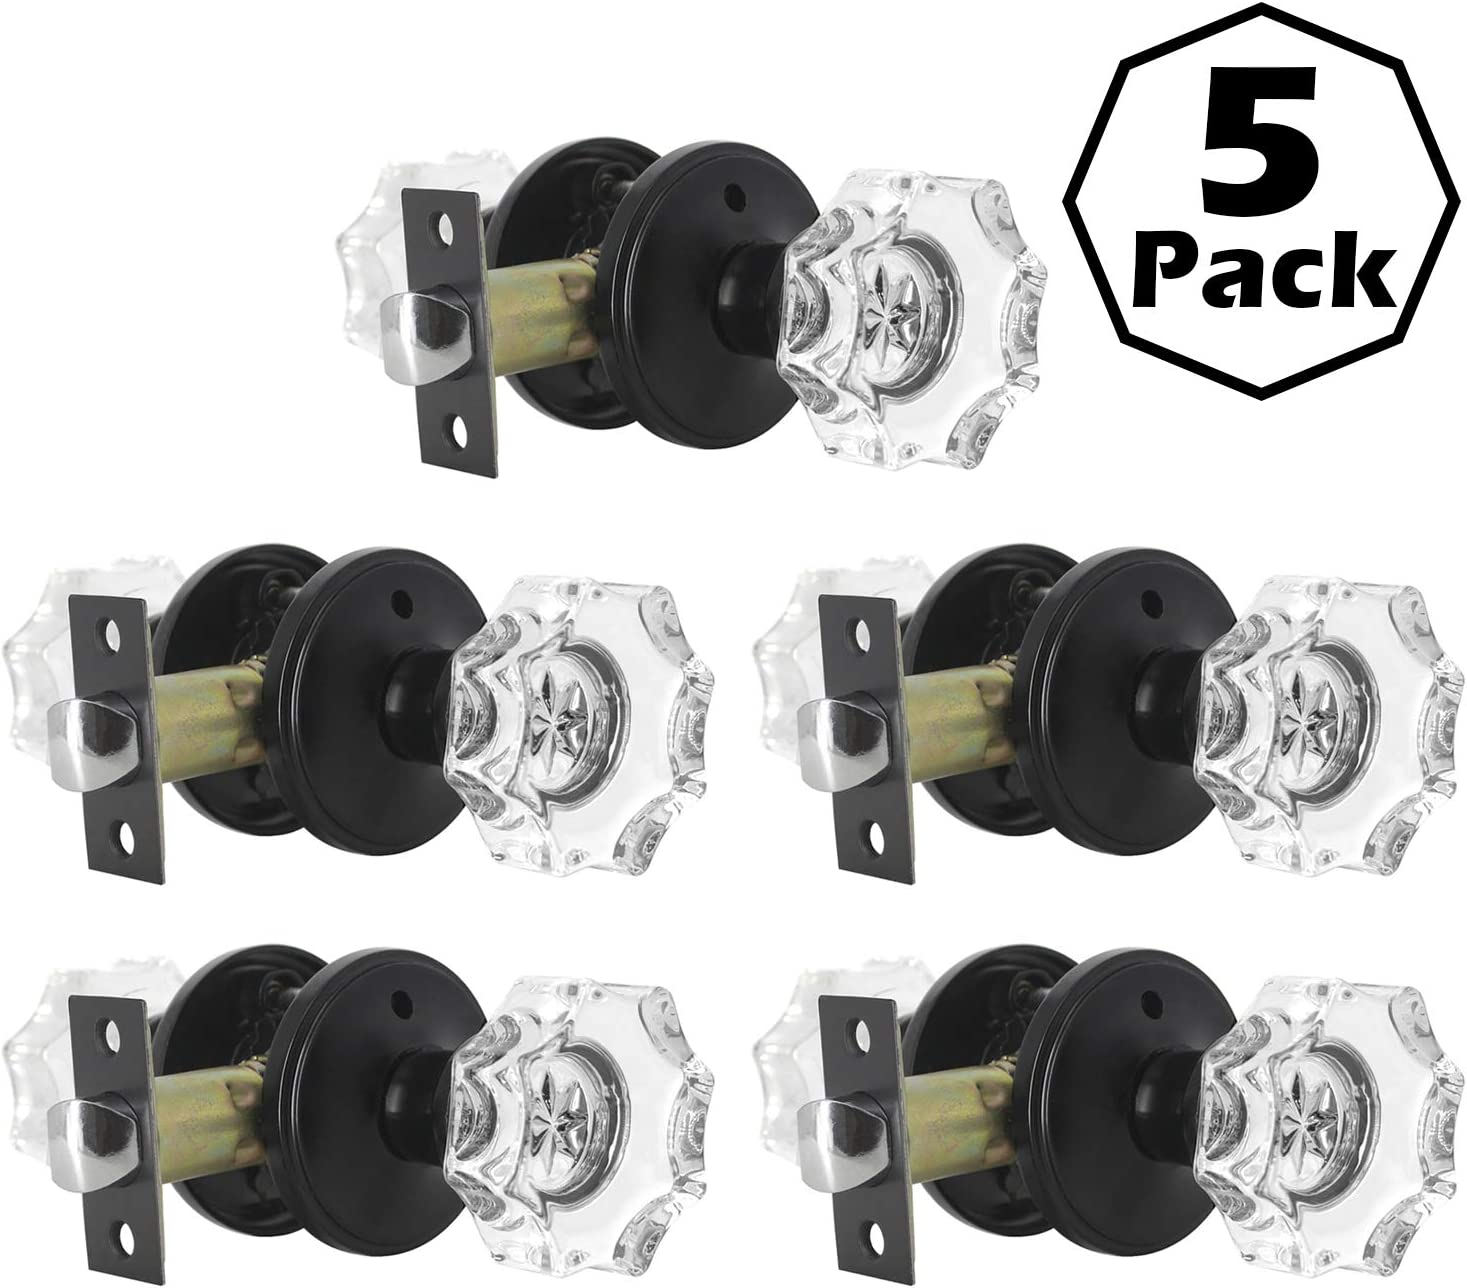 GOBEKOR 5 Pack Real Crystal Door Knob Sets with Lock Glass Privacy Knobs with Classic Rosette in Black,Interior Door Locksets for Bed and Batrh